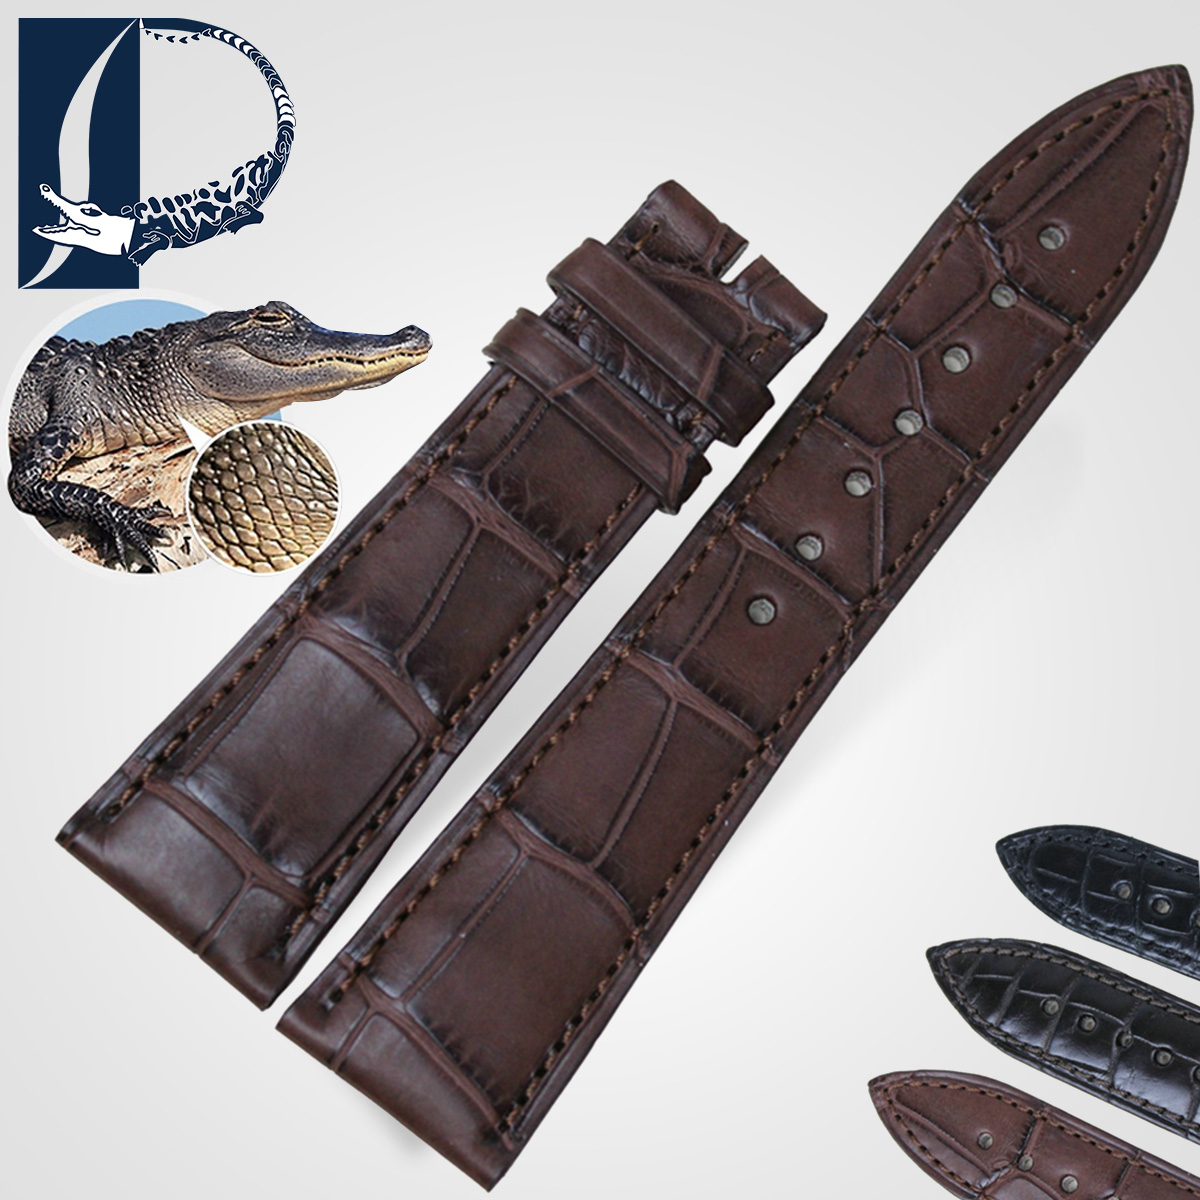 Pesno alligator strap replacement blancpain blancpain blancpain moon phase 22MM black and brown leather watch band